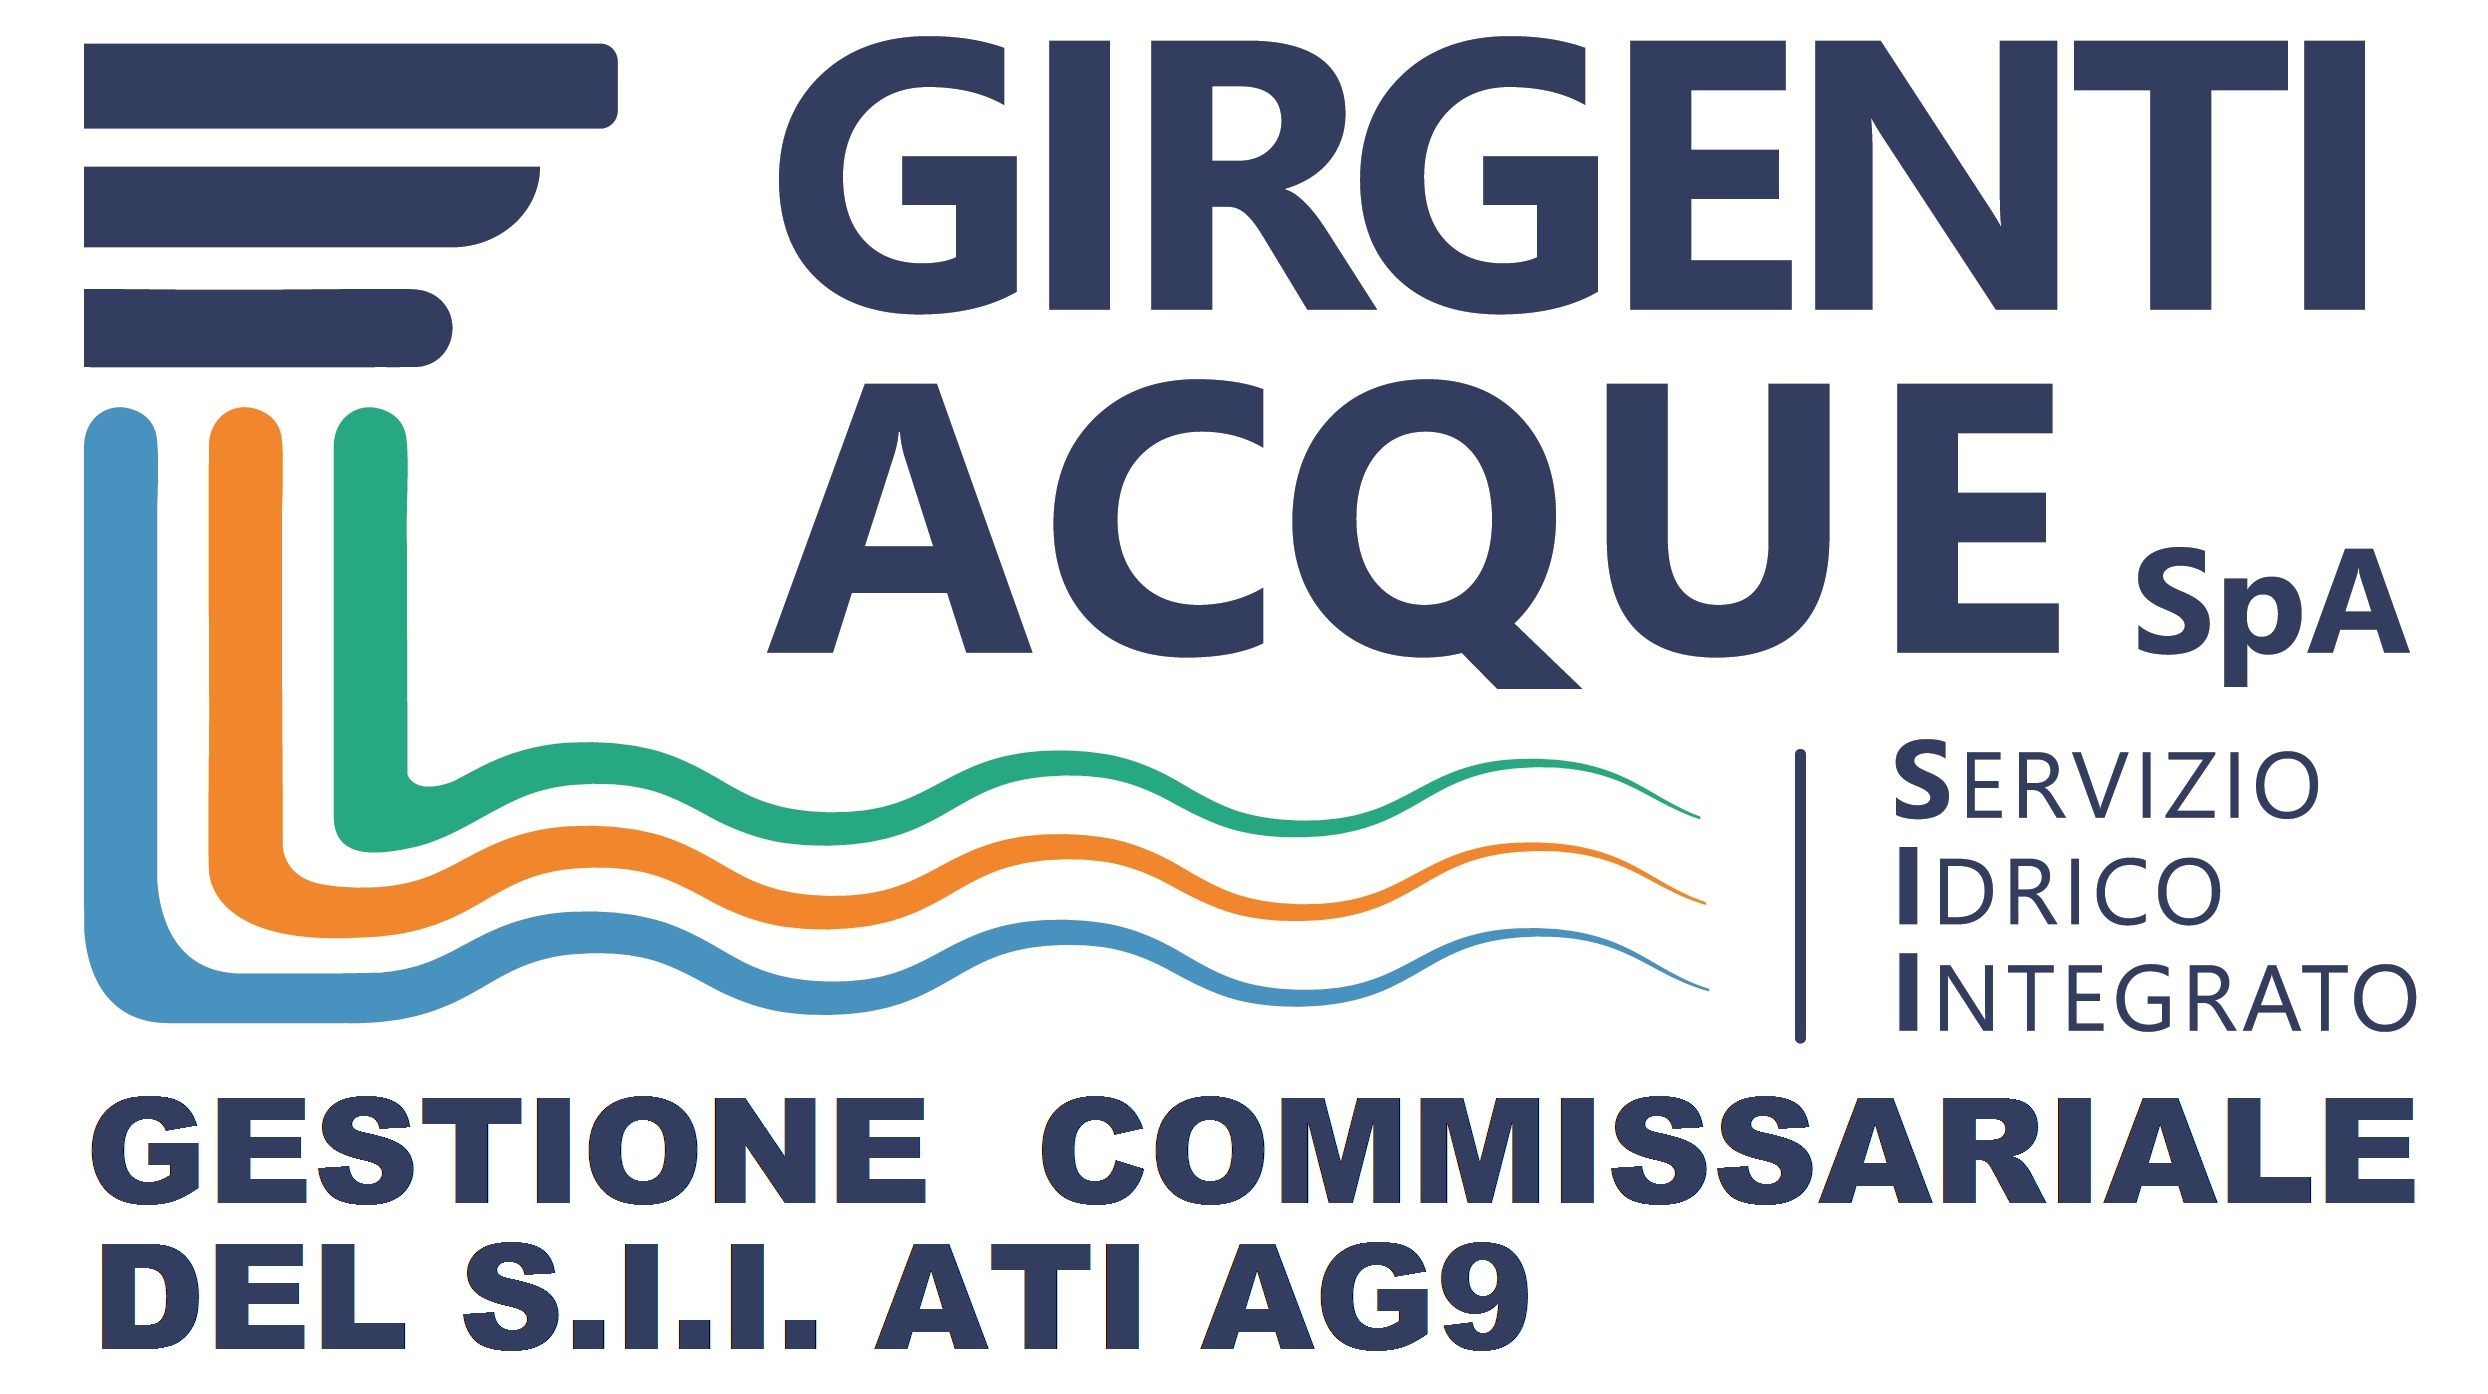 LOGO GIRGENTI ACQUE GESTIONE COMMISSARIALE